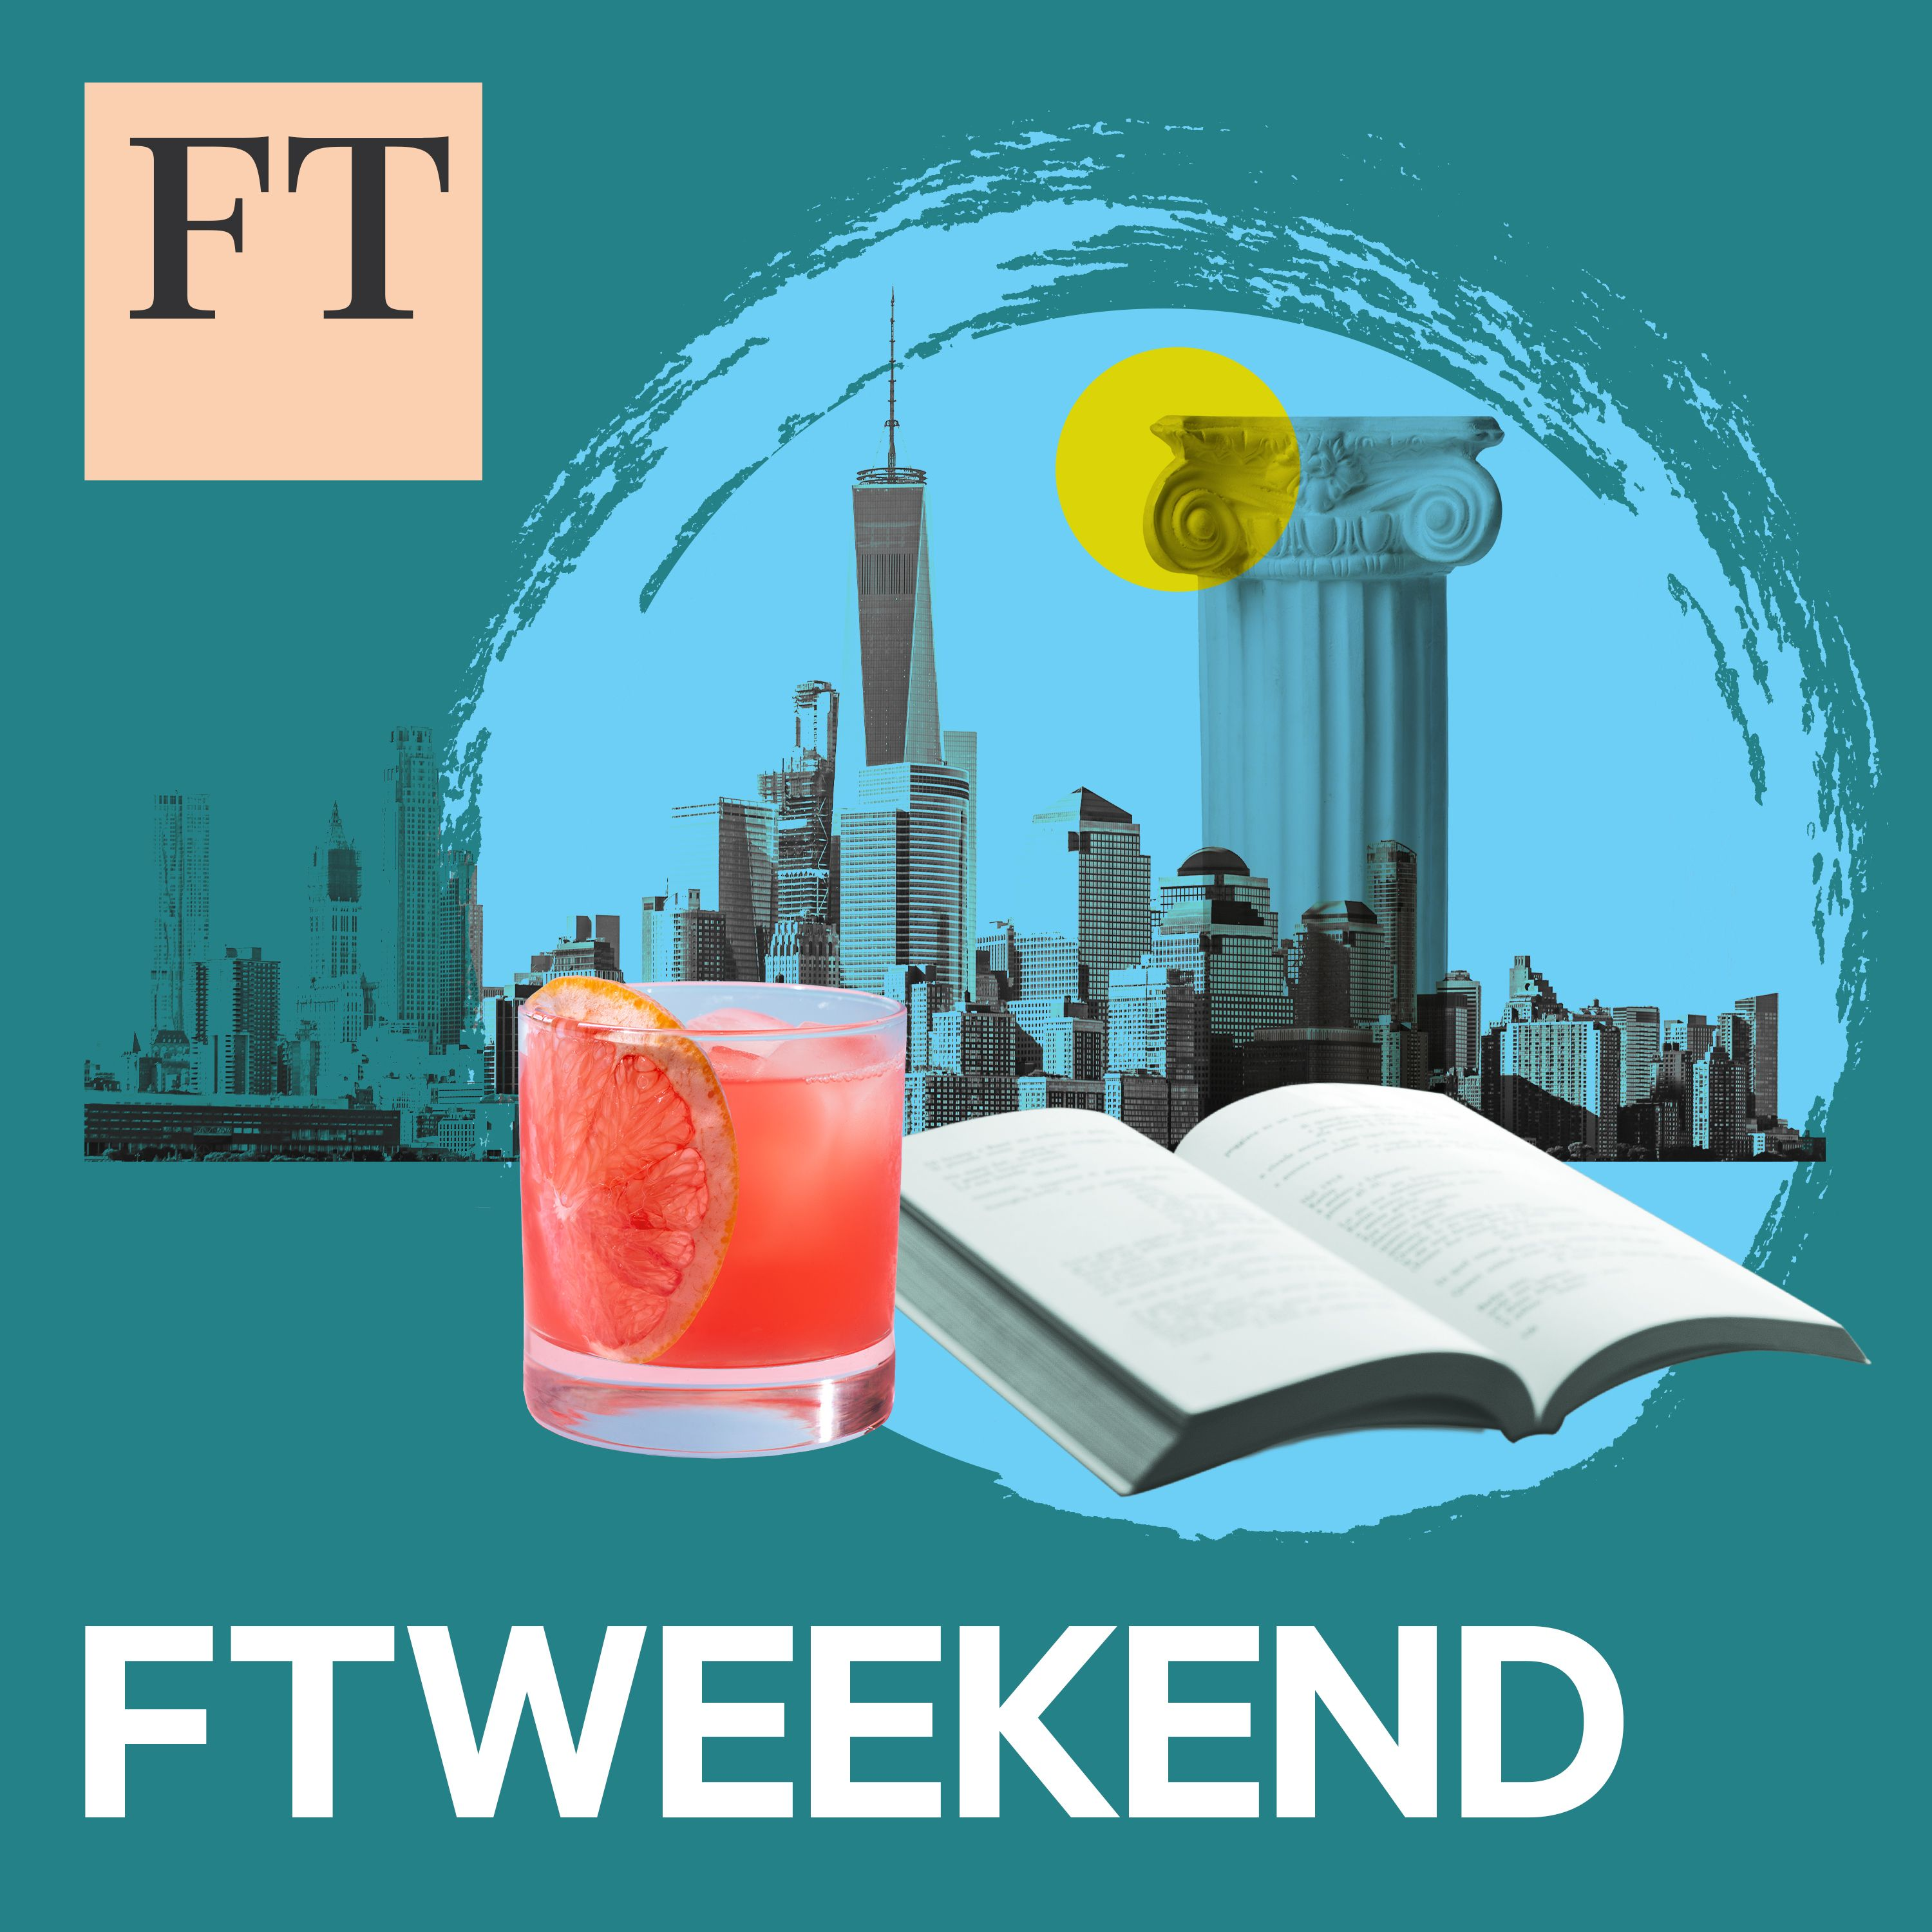 Trailer: Introducing the FT Weekend podcast